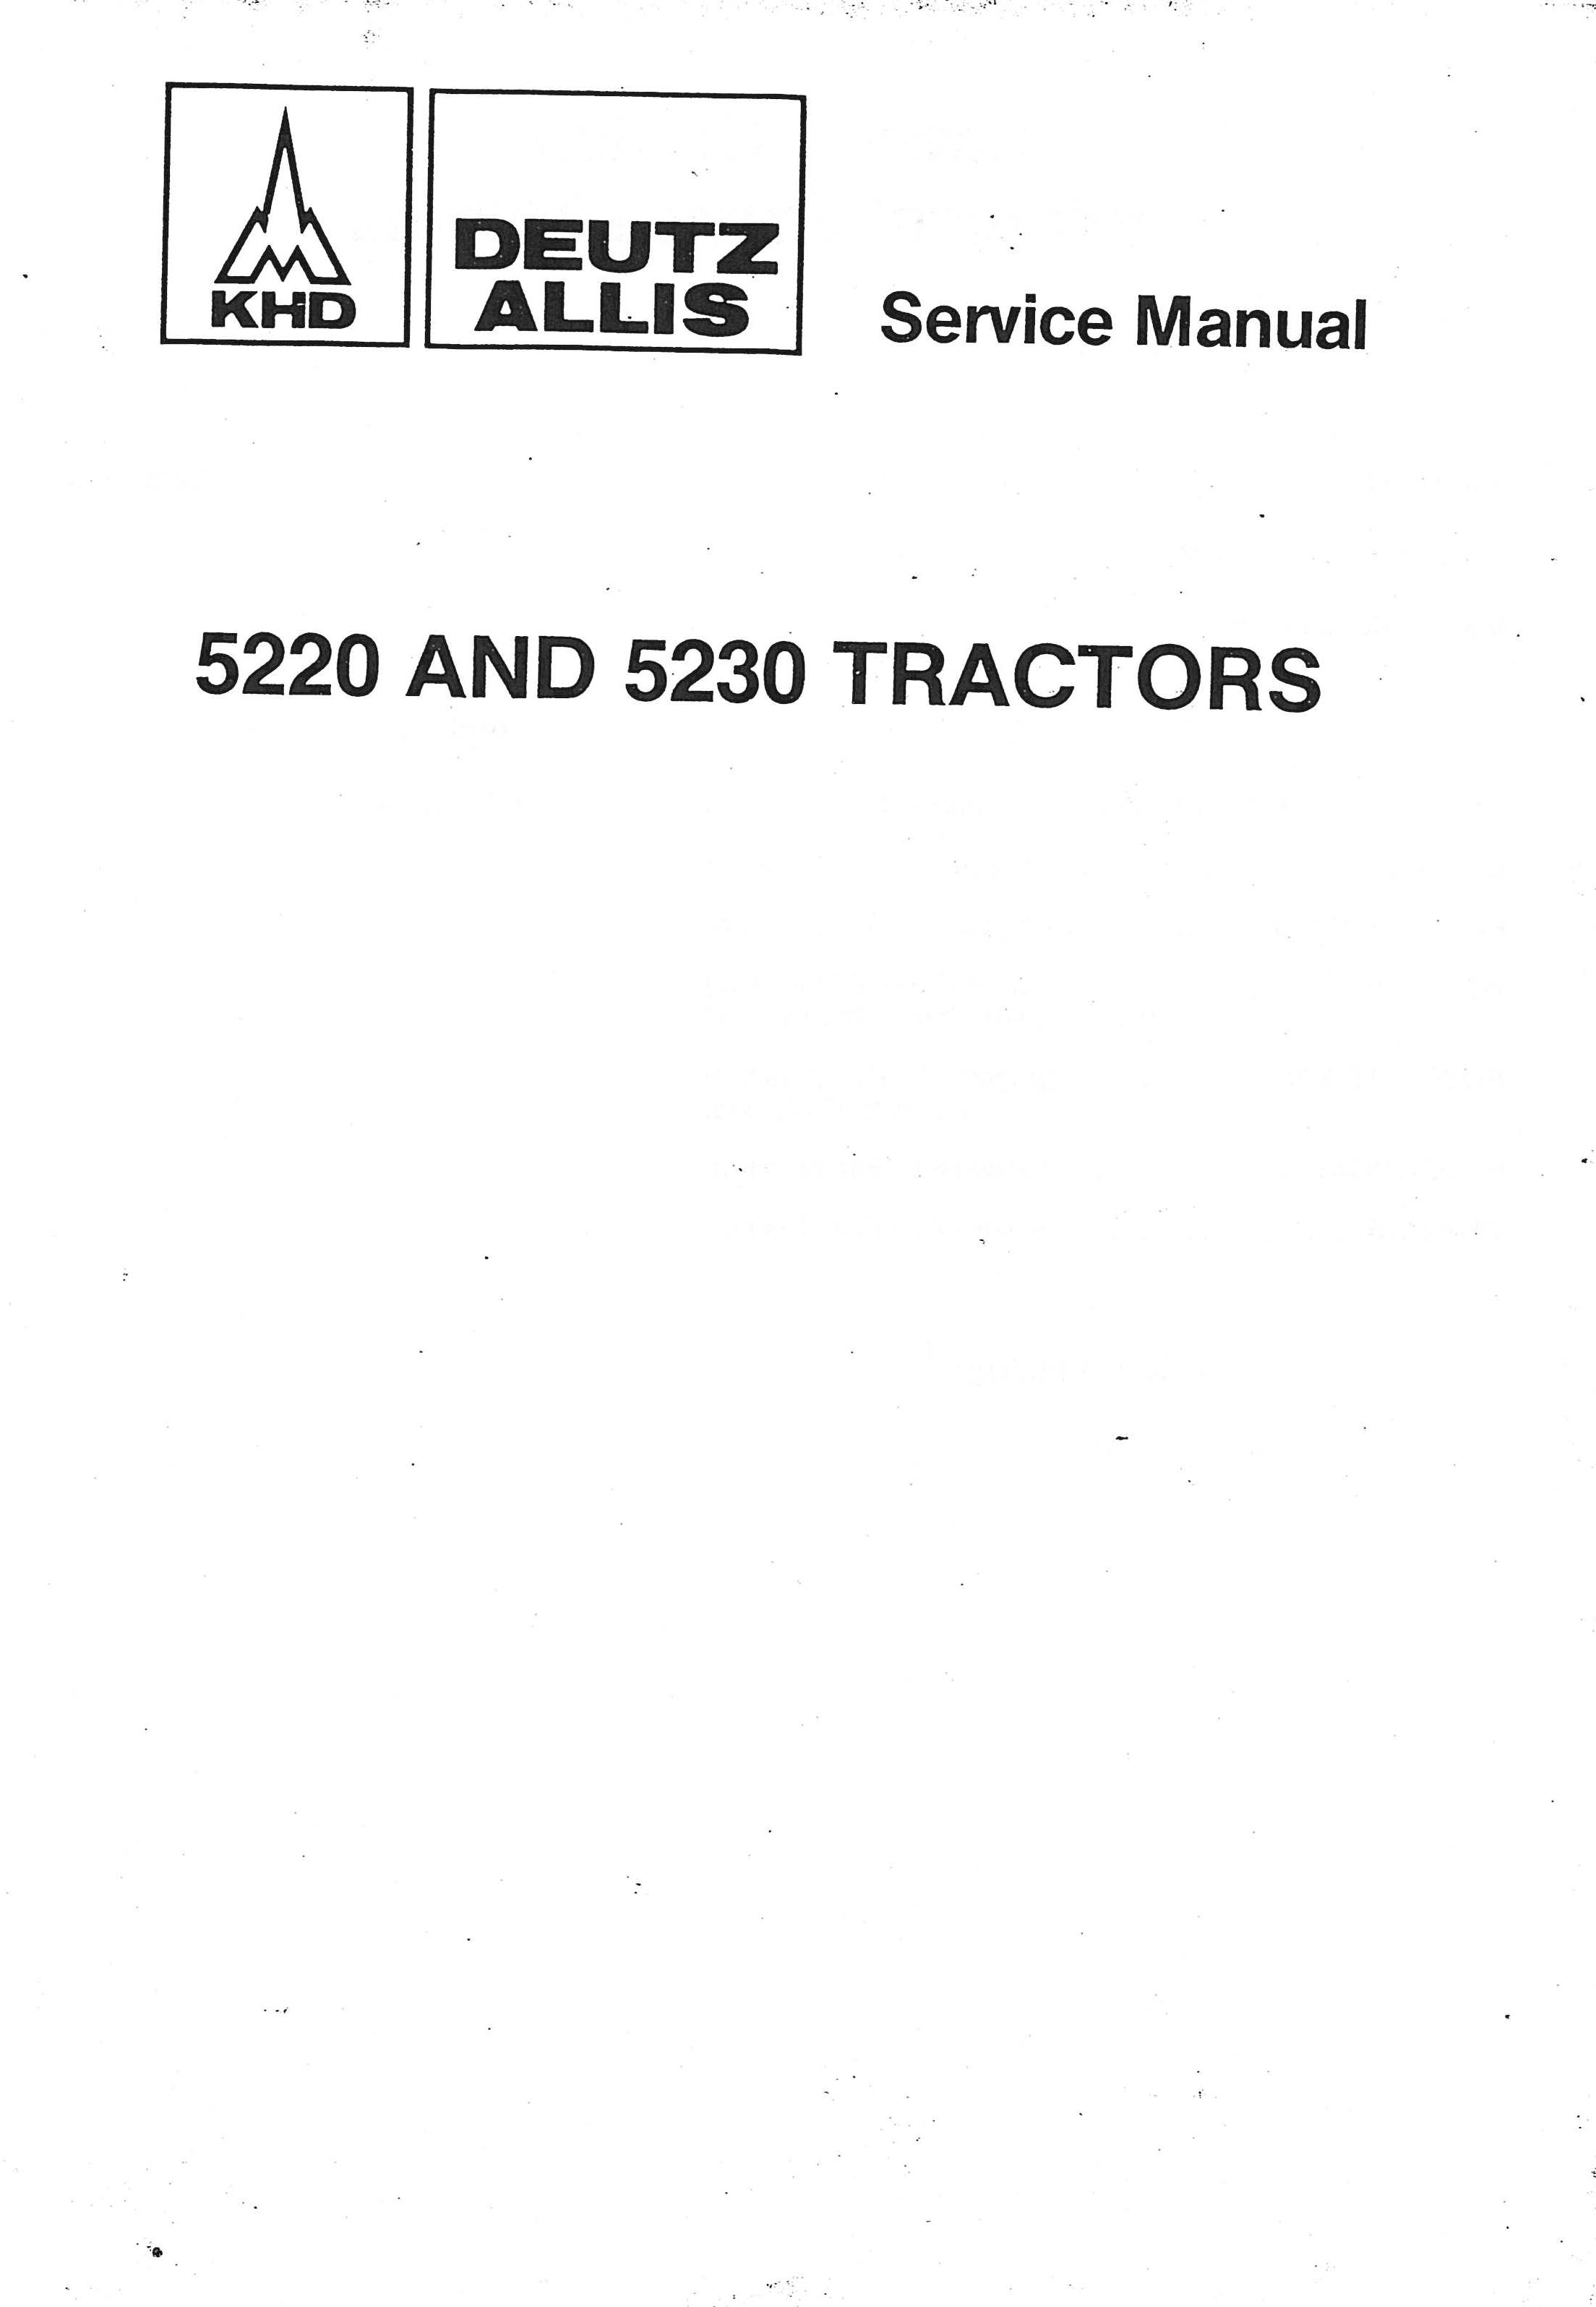 Deutz-Allis 5220 5230 Diesel 2 and 4WD Synchro Lawn & Garden Tractor  Service Manual